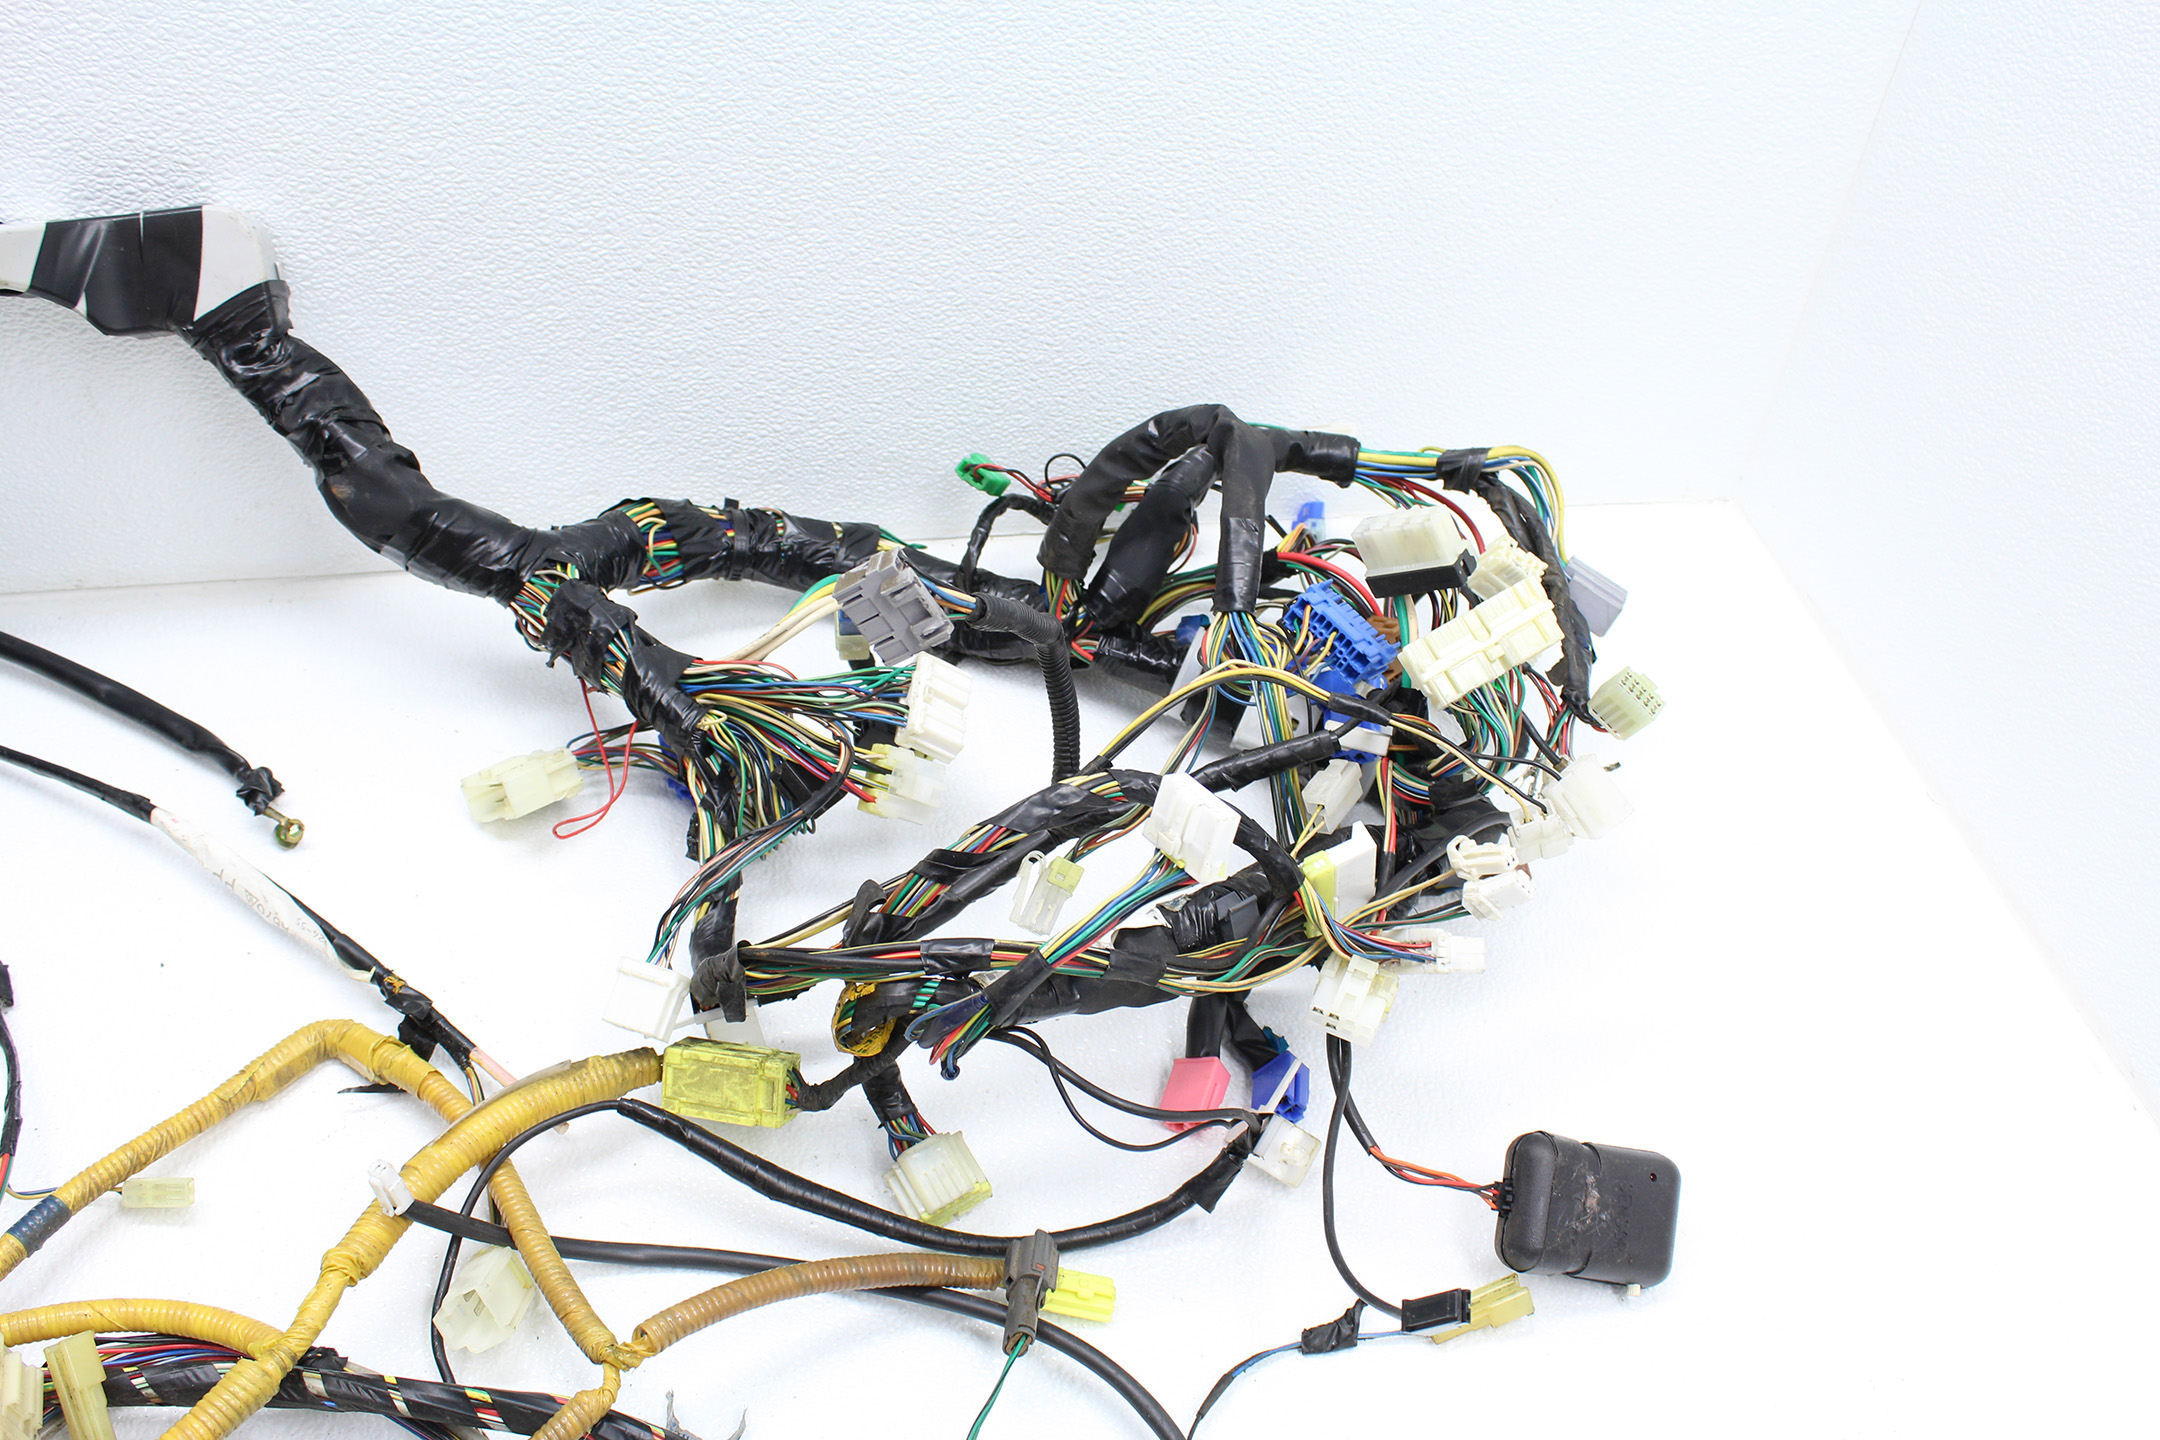 Bulk Wiring Harness Subaru Forester Find Diagram 1998 2001 Impreza 2 5 Rs Head 5mt Under Rh Subieautoparts Com Engine Connectors